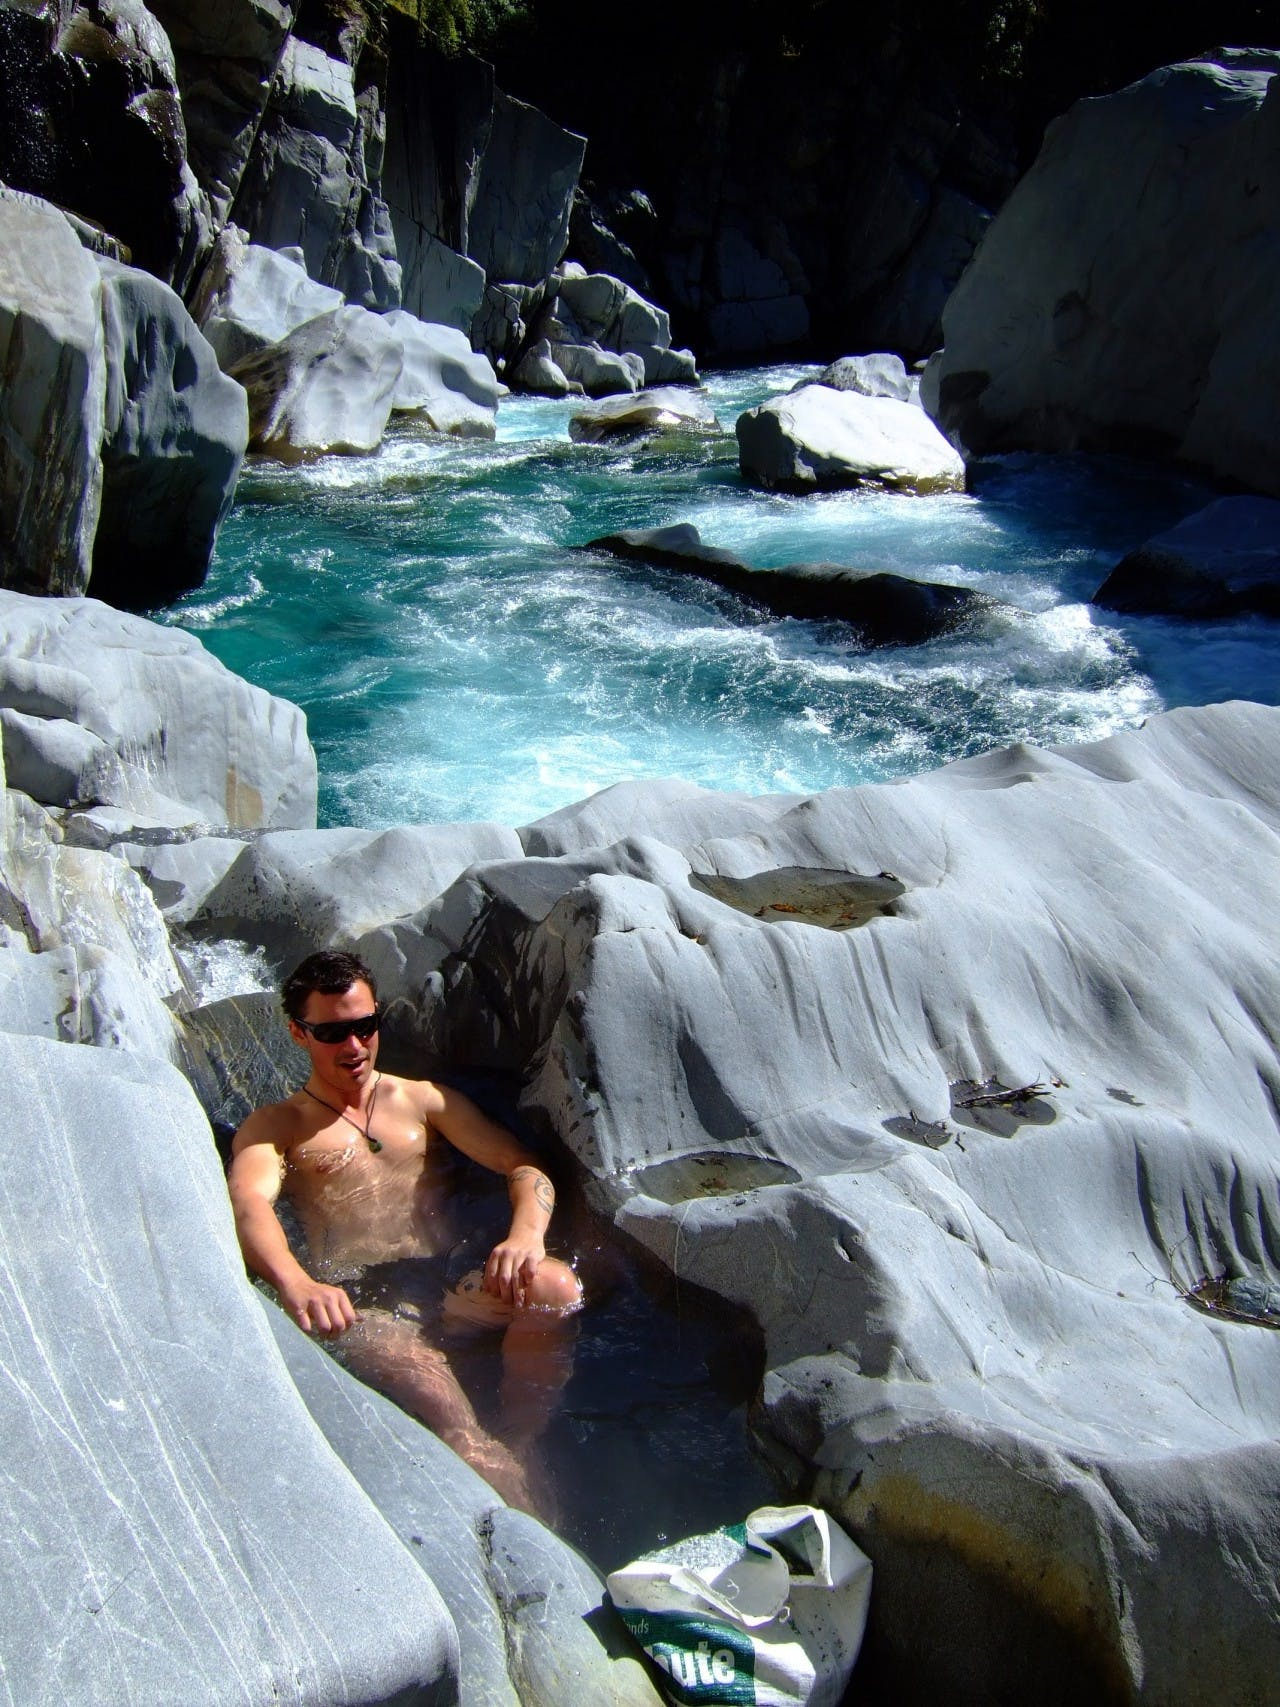 Soaking weary muscles in a hotpool, like this one on the Waitaha River, is one of life's joys. Photo: Sally Jackson